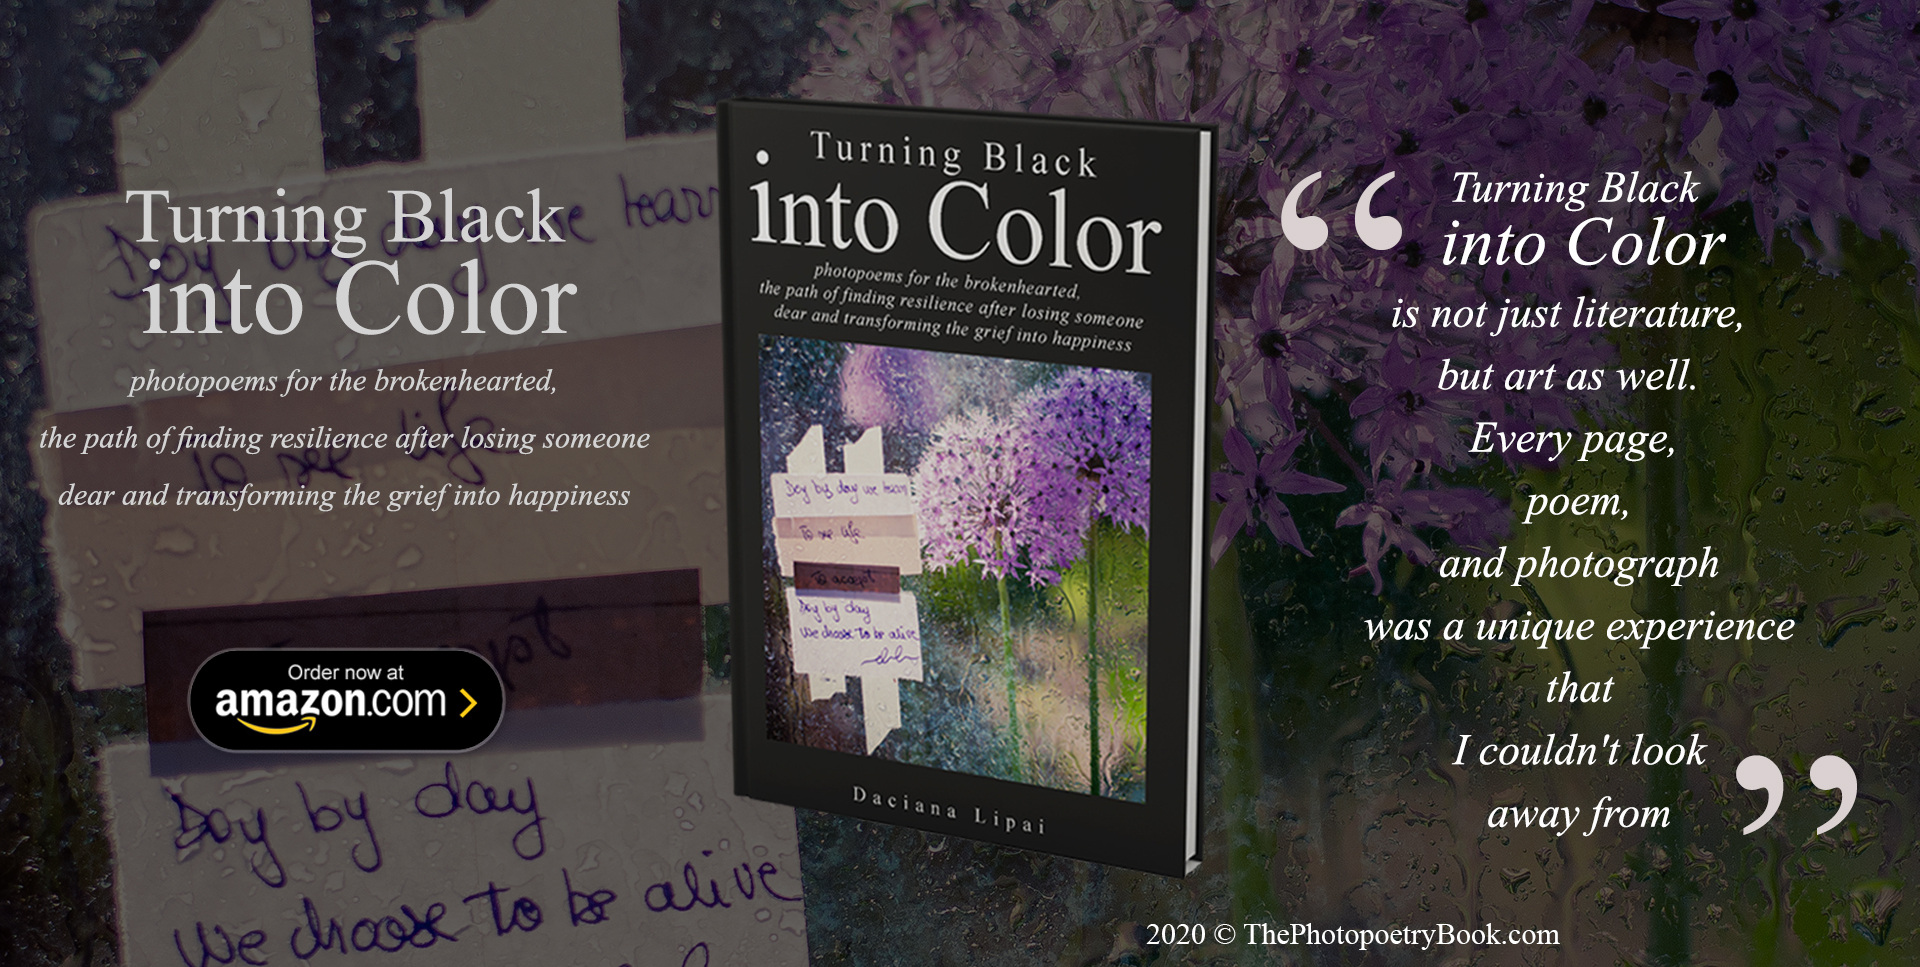 Turning Black into Color Book Launch Live on Amazon